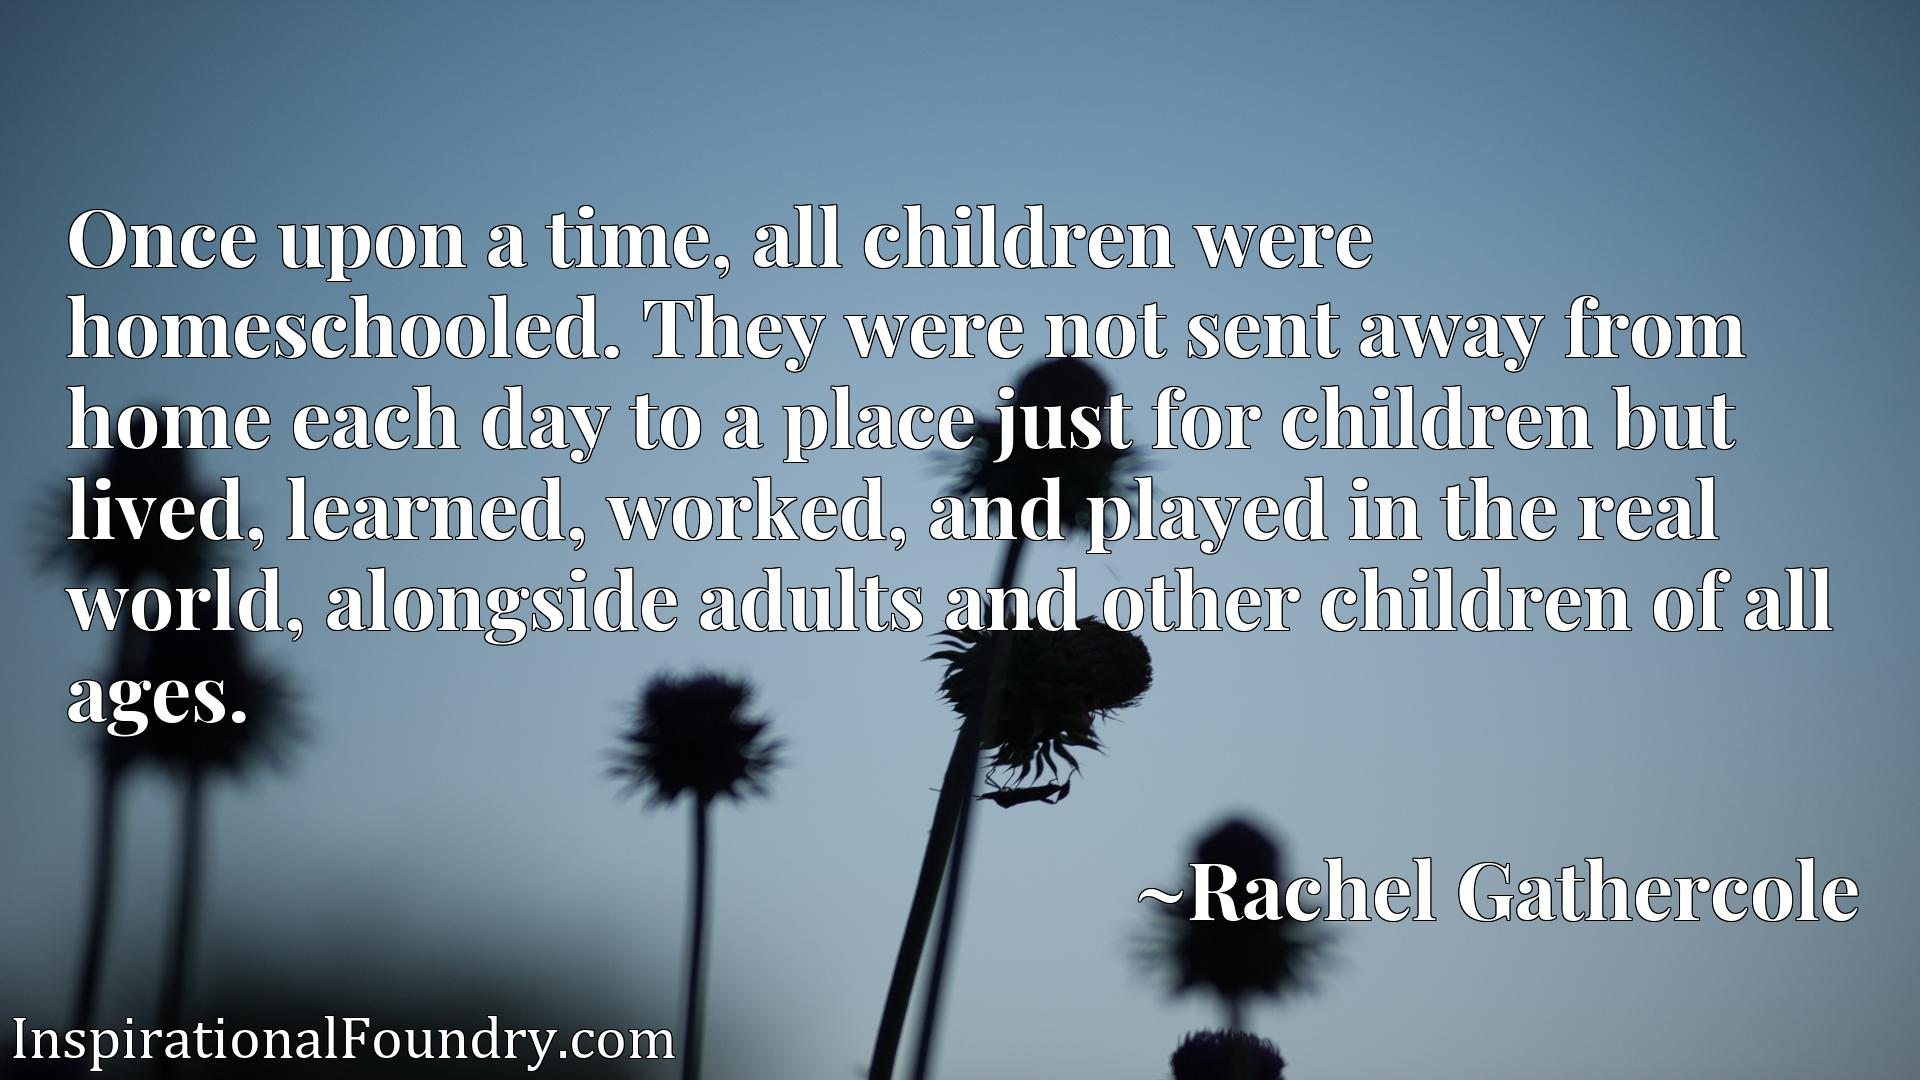 Once upon a time, all children were homeschooled. They were not sent away from home each day to a place just for children but lived, learned, worked, and played in the real world, alongside adults and other children of all ages.